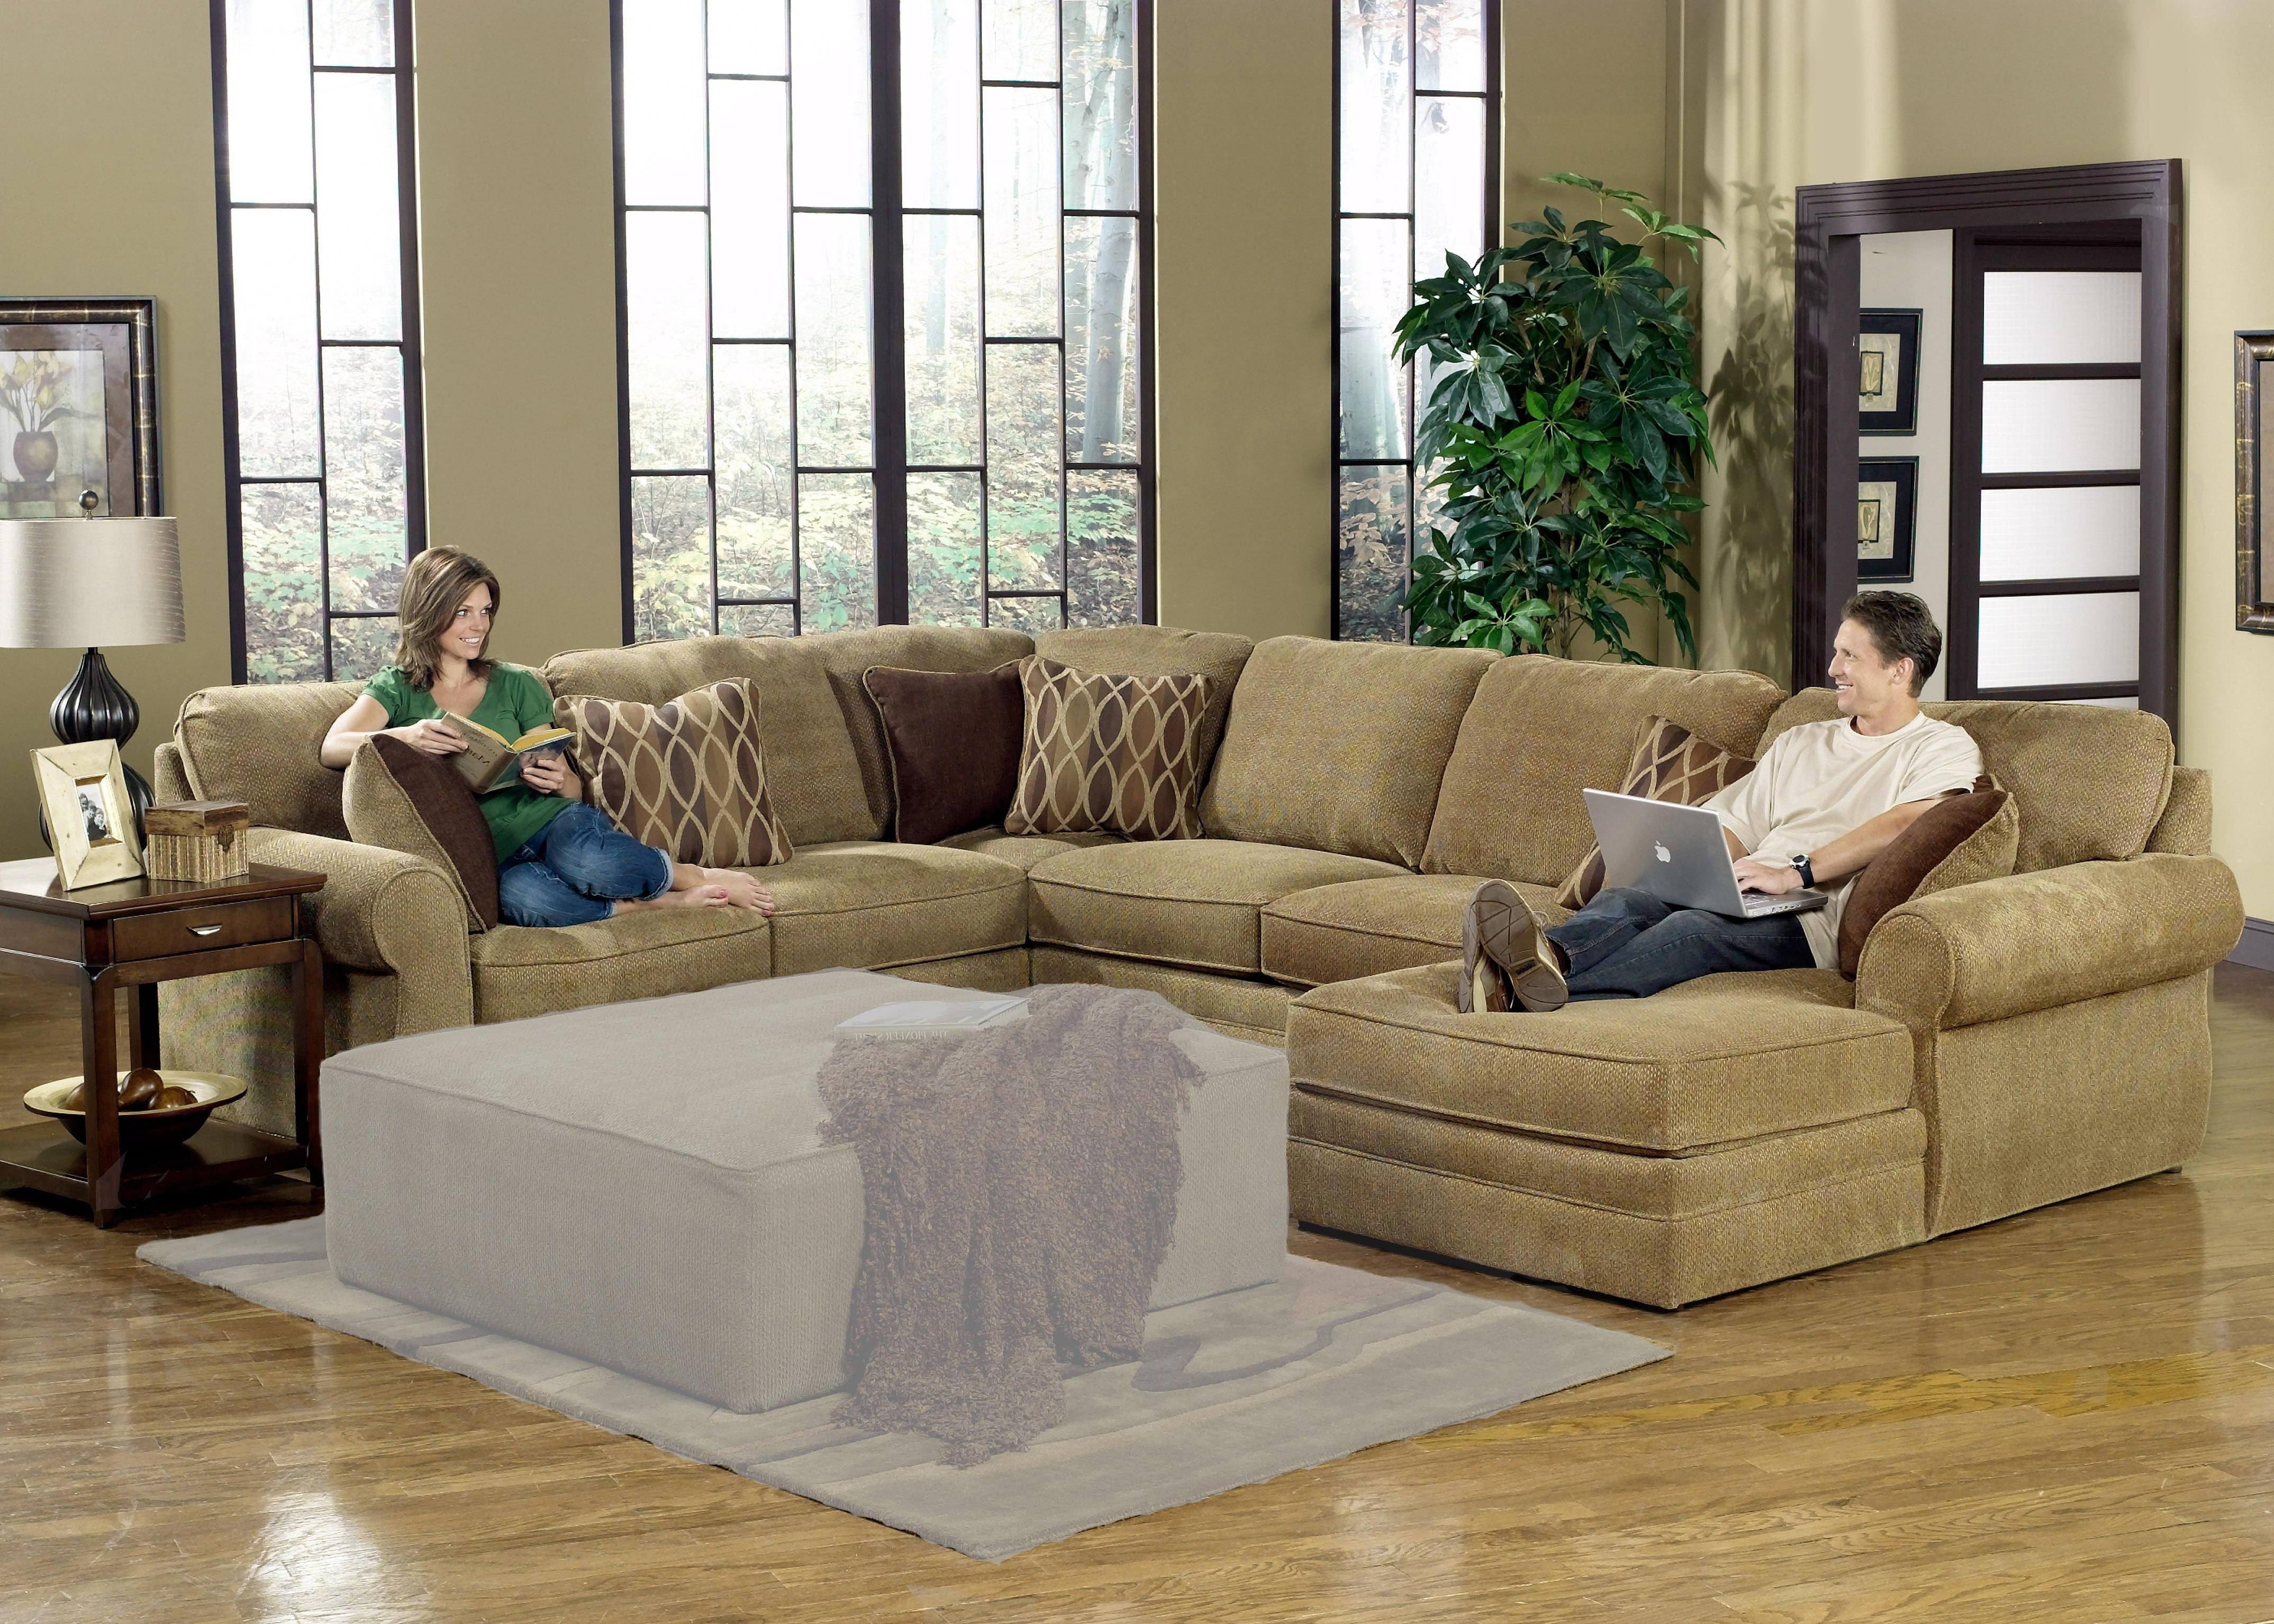 Recent Furniture: Captivating U Shaped Sectional For Your Living Room Intended For Huge U Shaped Sectionals (View 13 of 20)